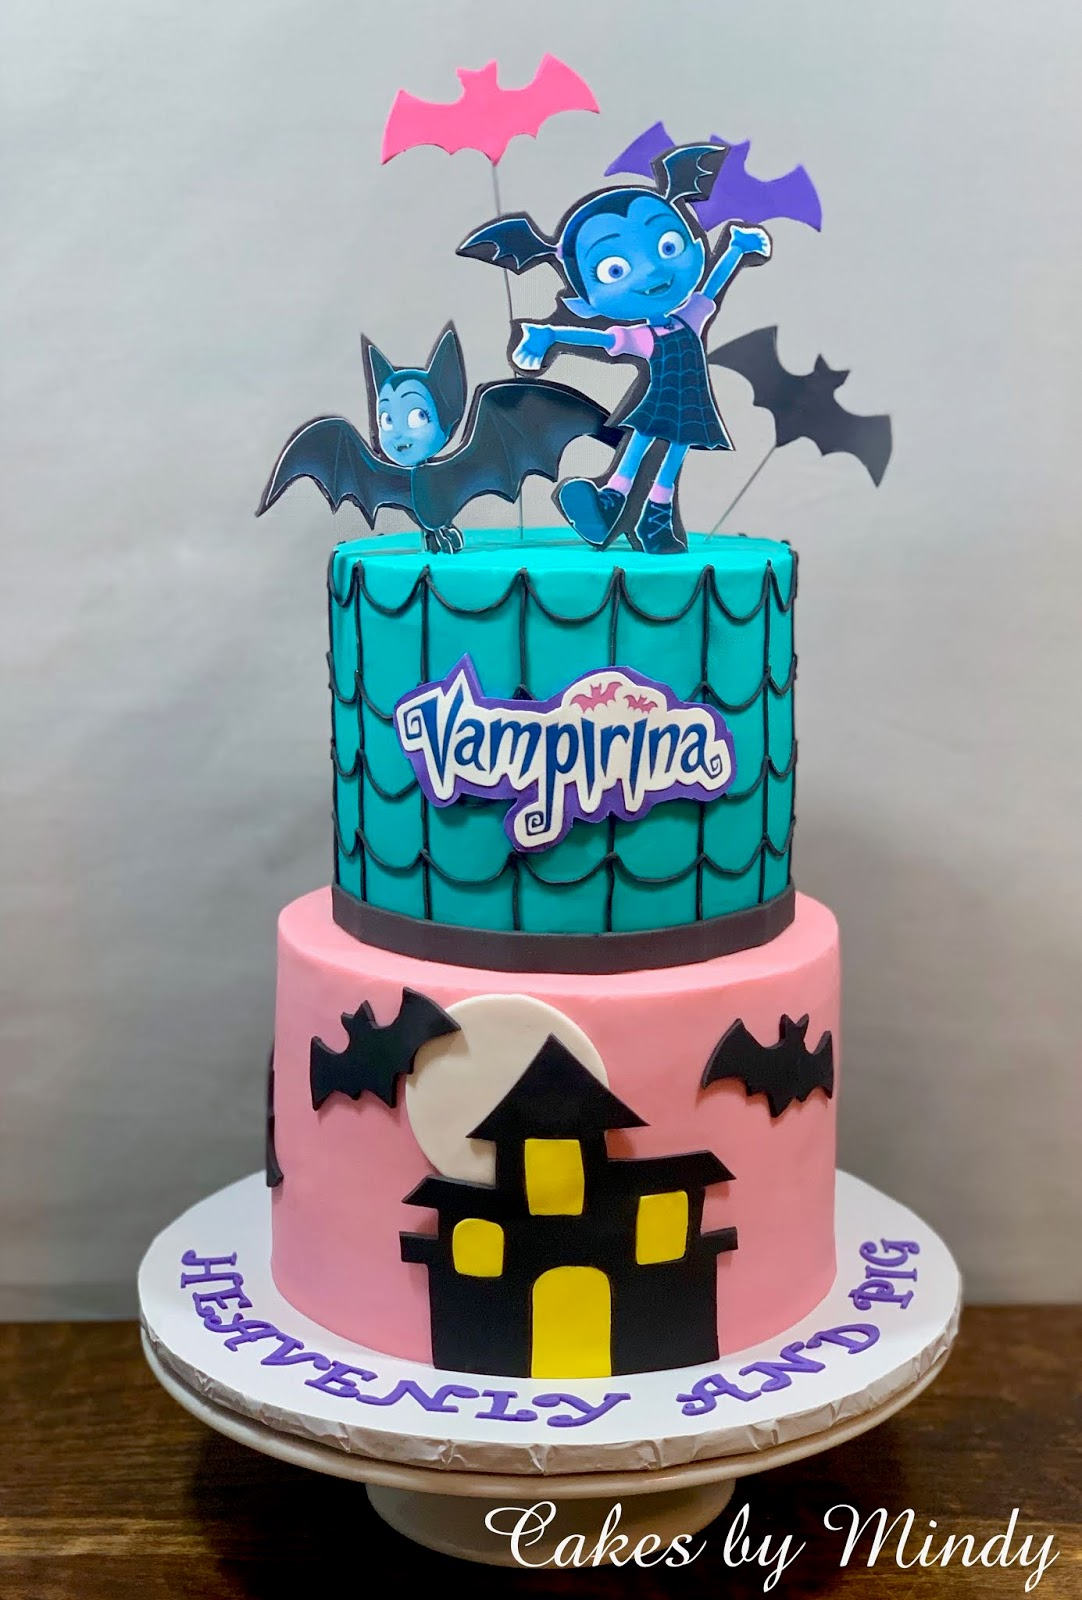 Cakes By Mindy Vampirina Cake 6 Quot Amp 8 Quot And Smash Cake 4 Quot